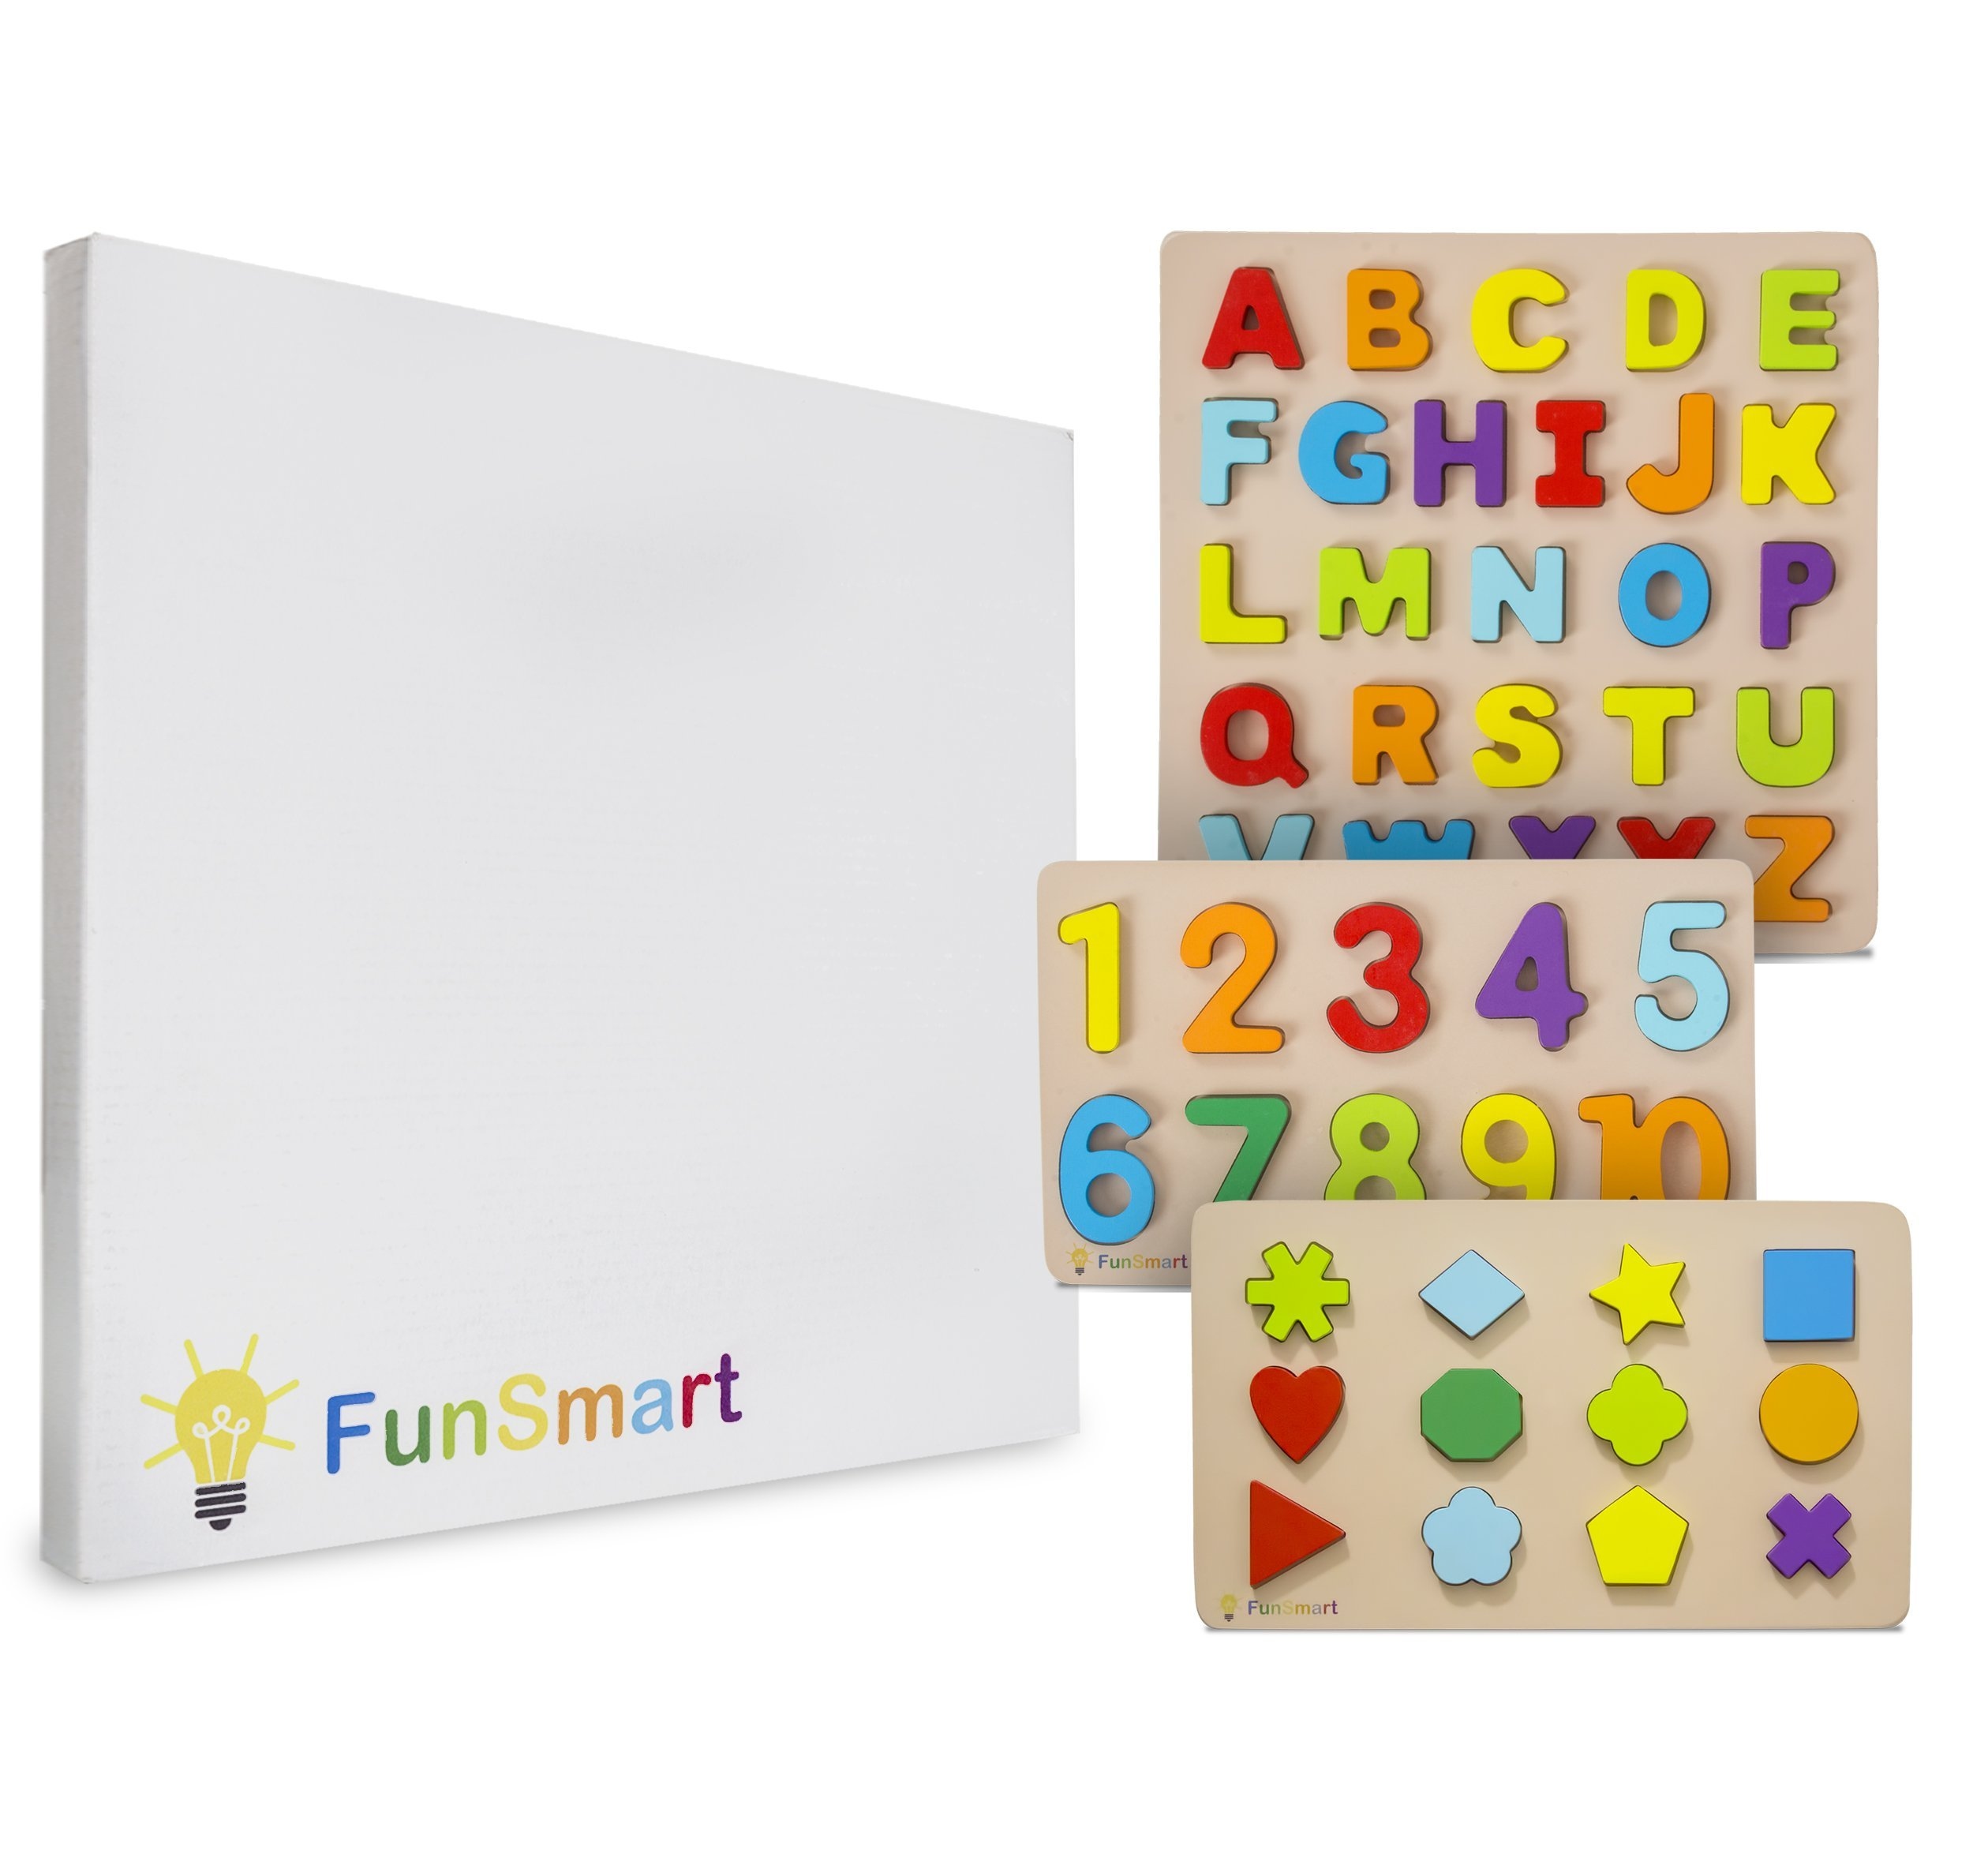 FUNSMART 3-Pack Wooden Puzzles for Kids | Sensory Toys and Colorful Blocks for Toddler Learning Alphabet, Numbers and Shapes | Best Educational Gifts for Preschool Boys and Girls Ages 3-6 Years Old by FUNSMART